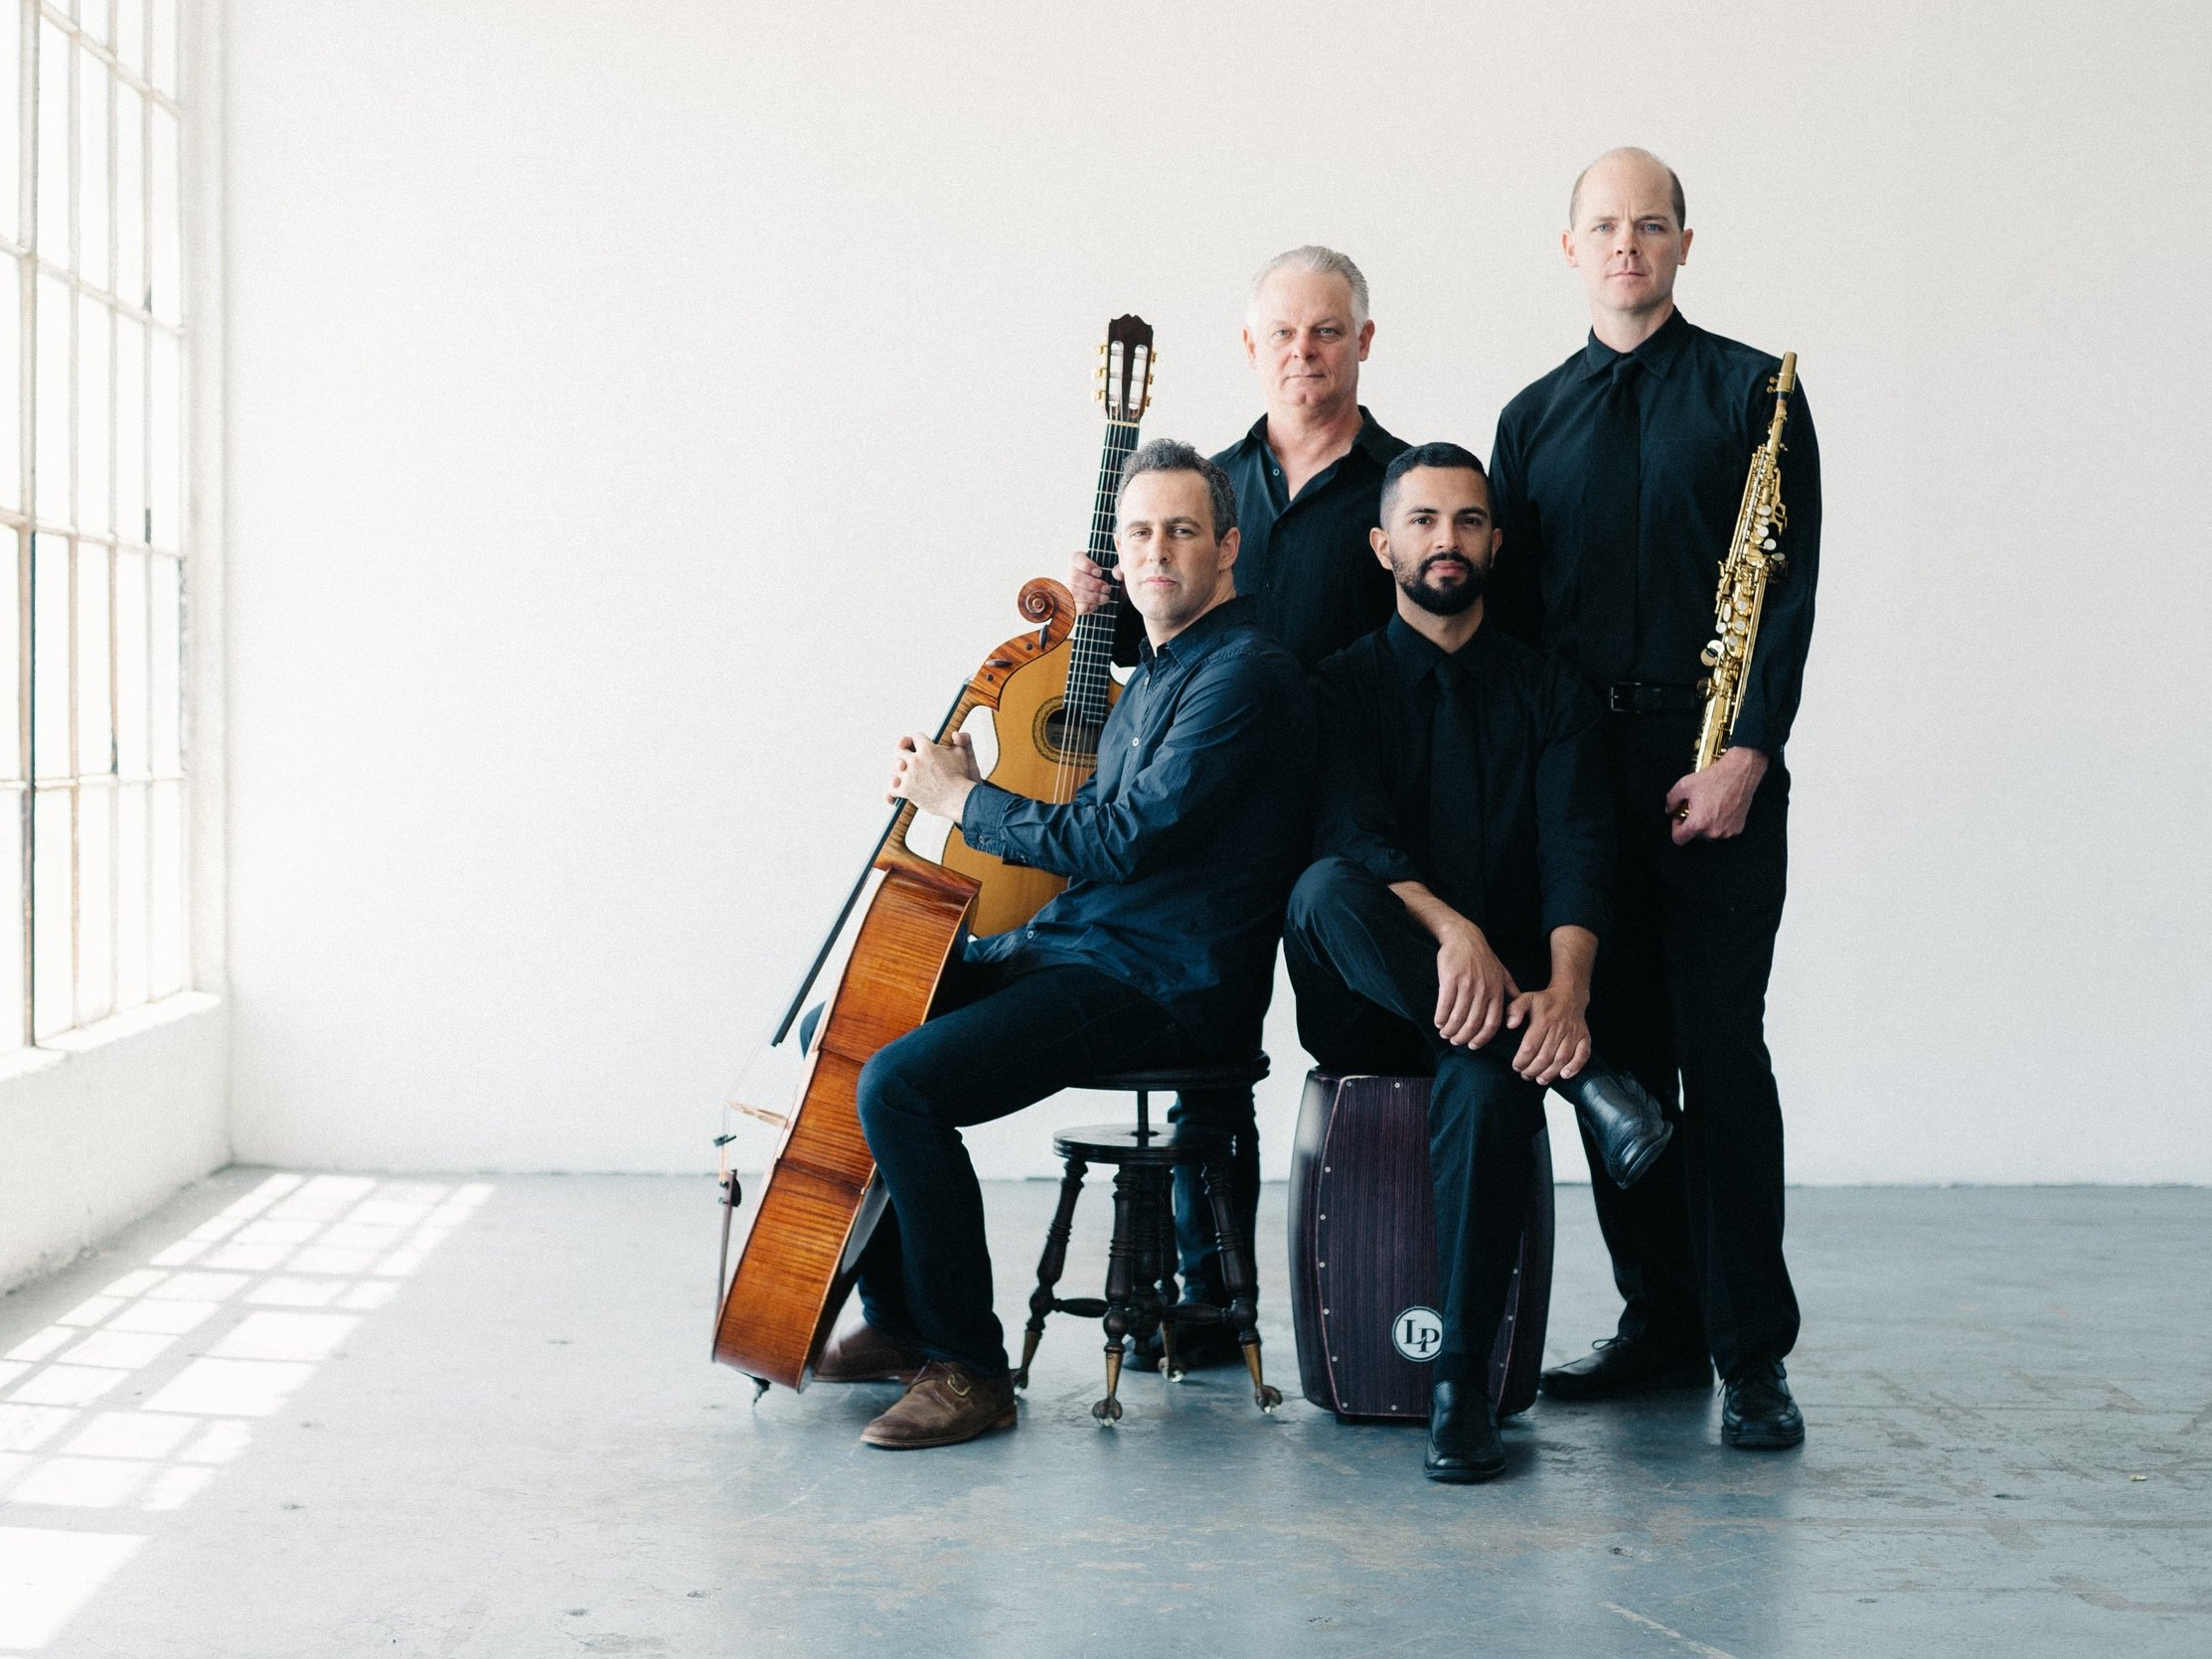 Quarteto Nuevo - January 16, 2020 - 10:30amLA-based Quarteto Nuevo (Damon Zick, soprano saxophone/woodwinds, Jacob Szekely, cello, Kenton Youngstrom guitar and Felipe Fraga, hand percussion) delights audiences in an eclectic array of works from Erik Satie and Claude Debussy, to Astor Piazzolla and Heitor Villa-Lobos, and original compositions that will entertain and surprise.